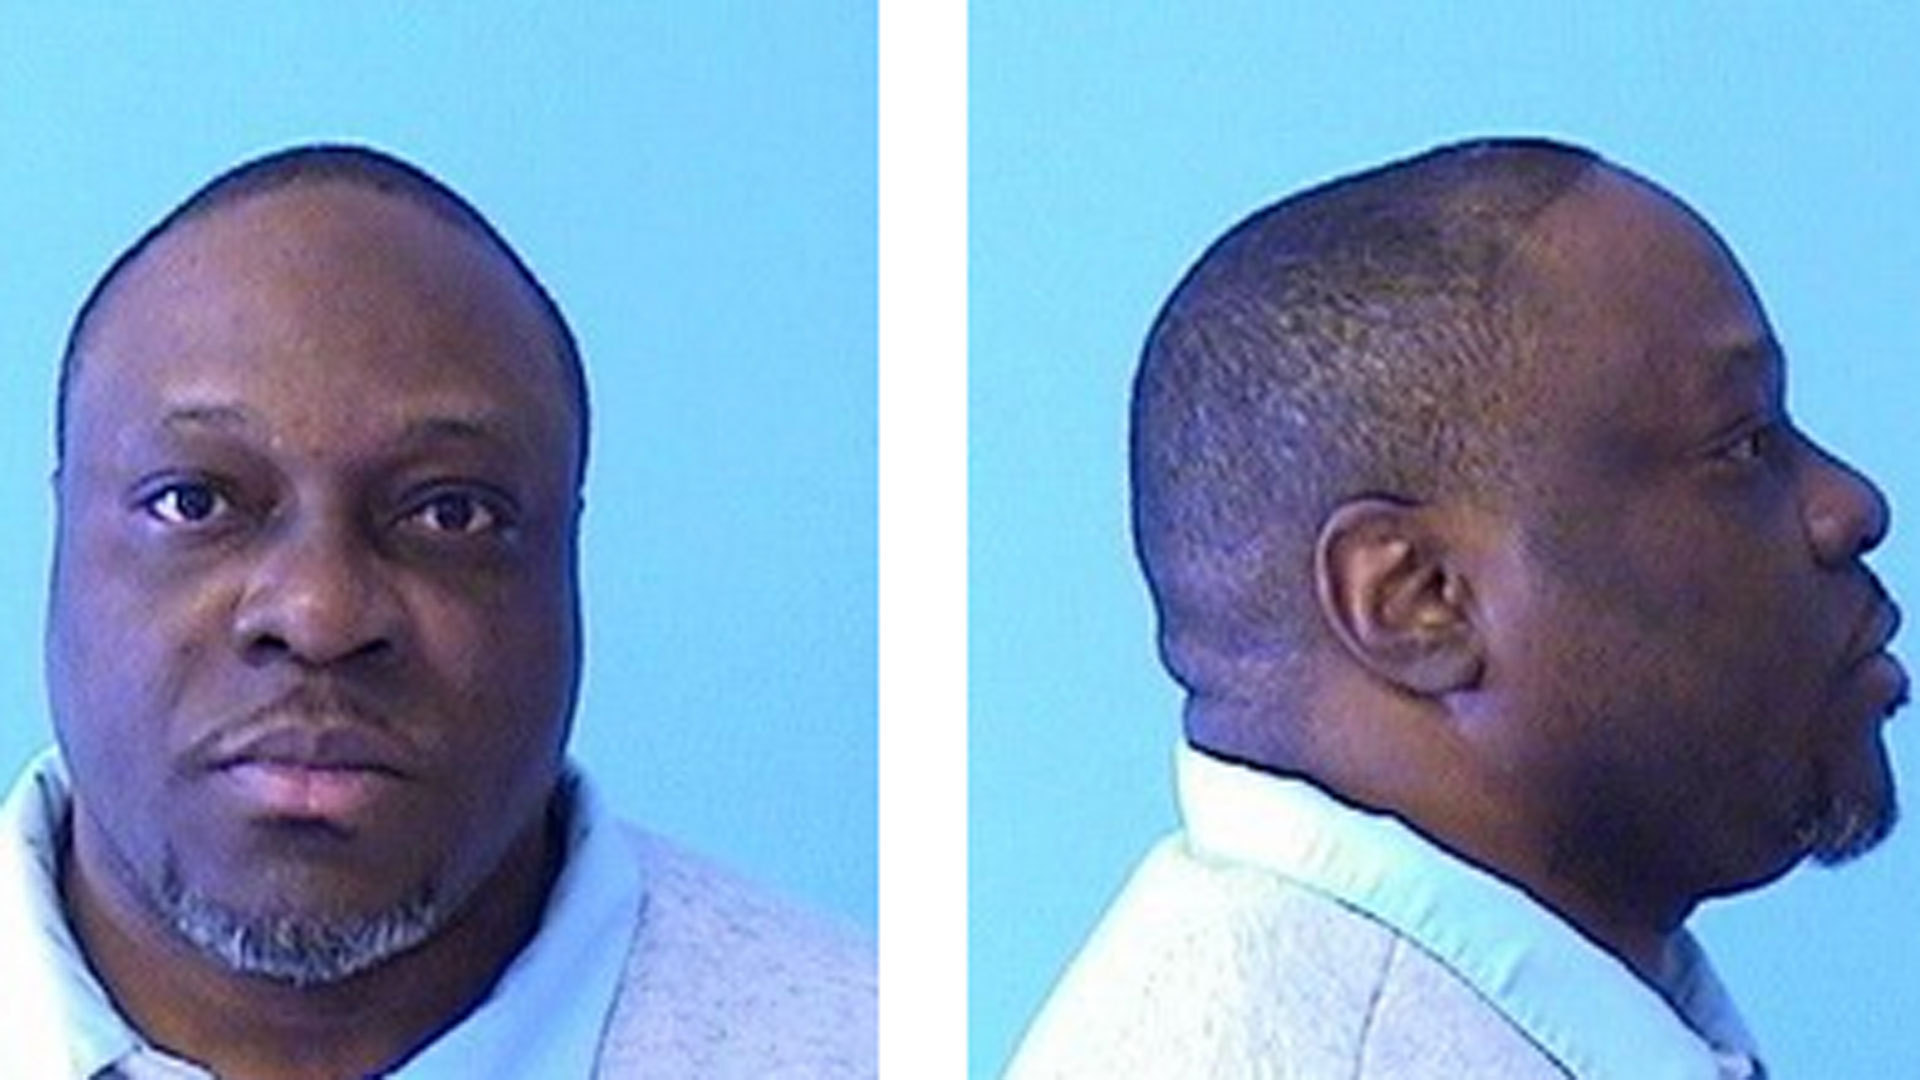 Appellate court: Inmate must pay $20K toward his incarceration